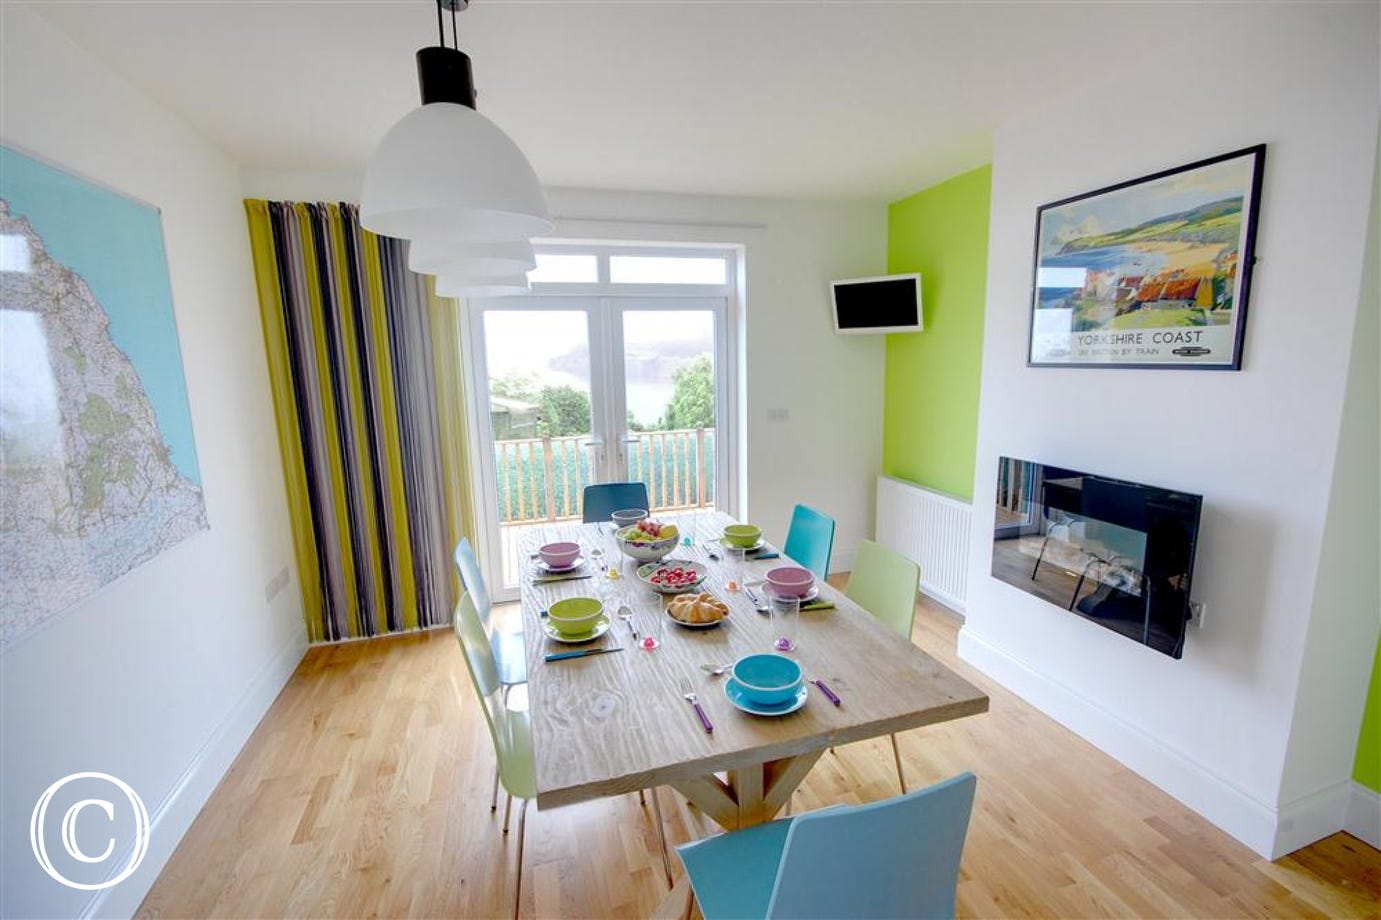 Colourful Dining Area which also gives further access to the outside decking and garden.